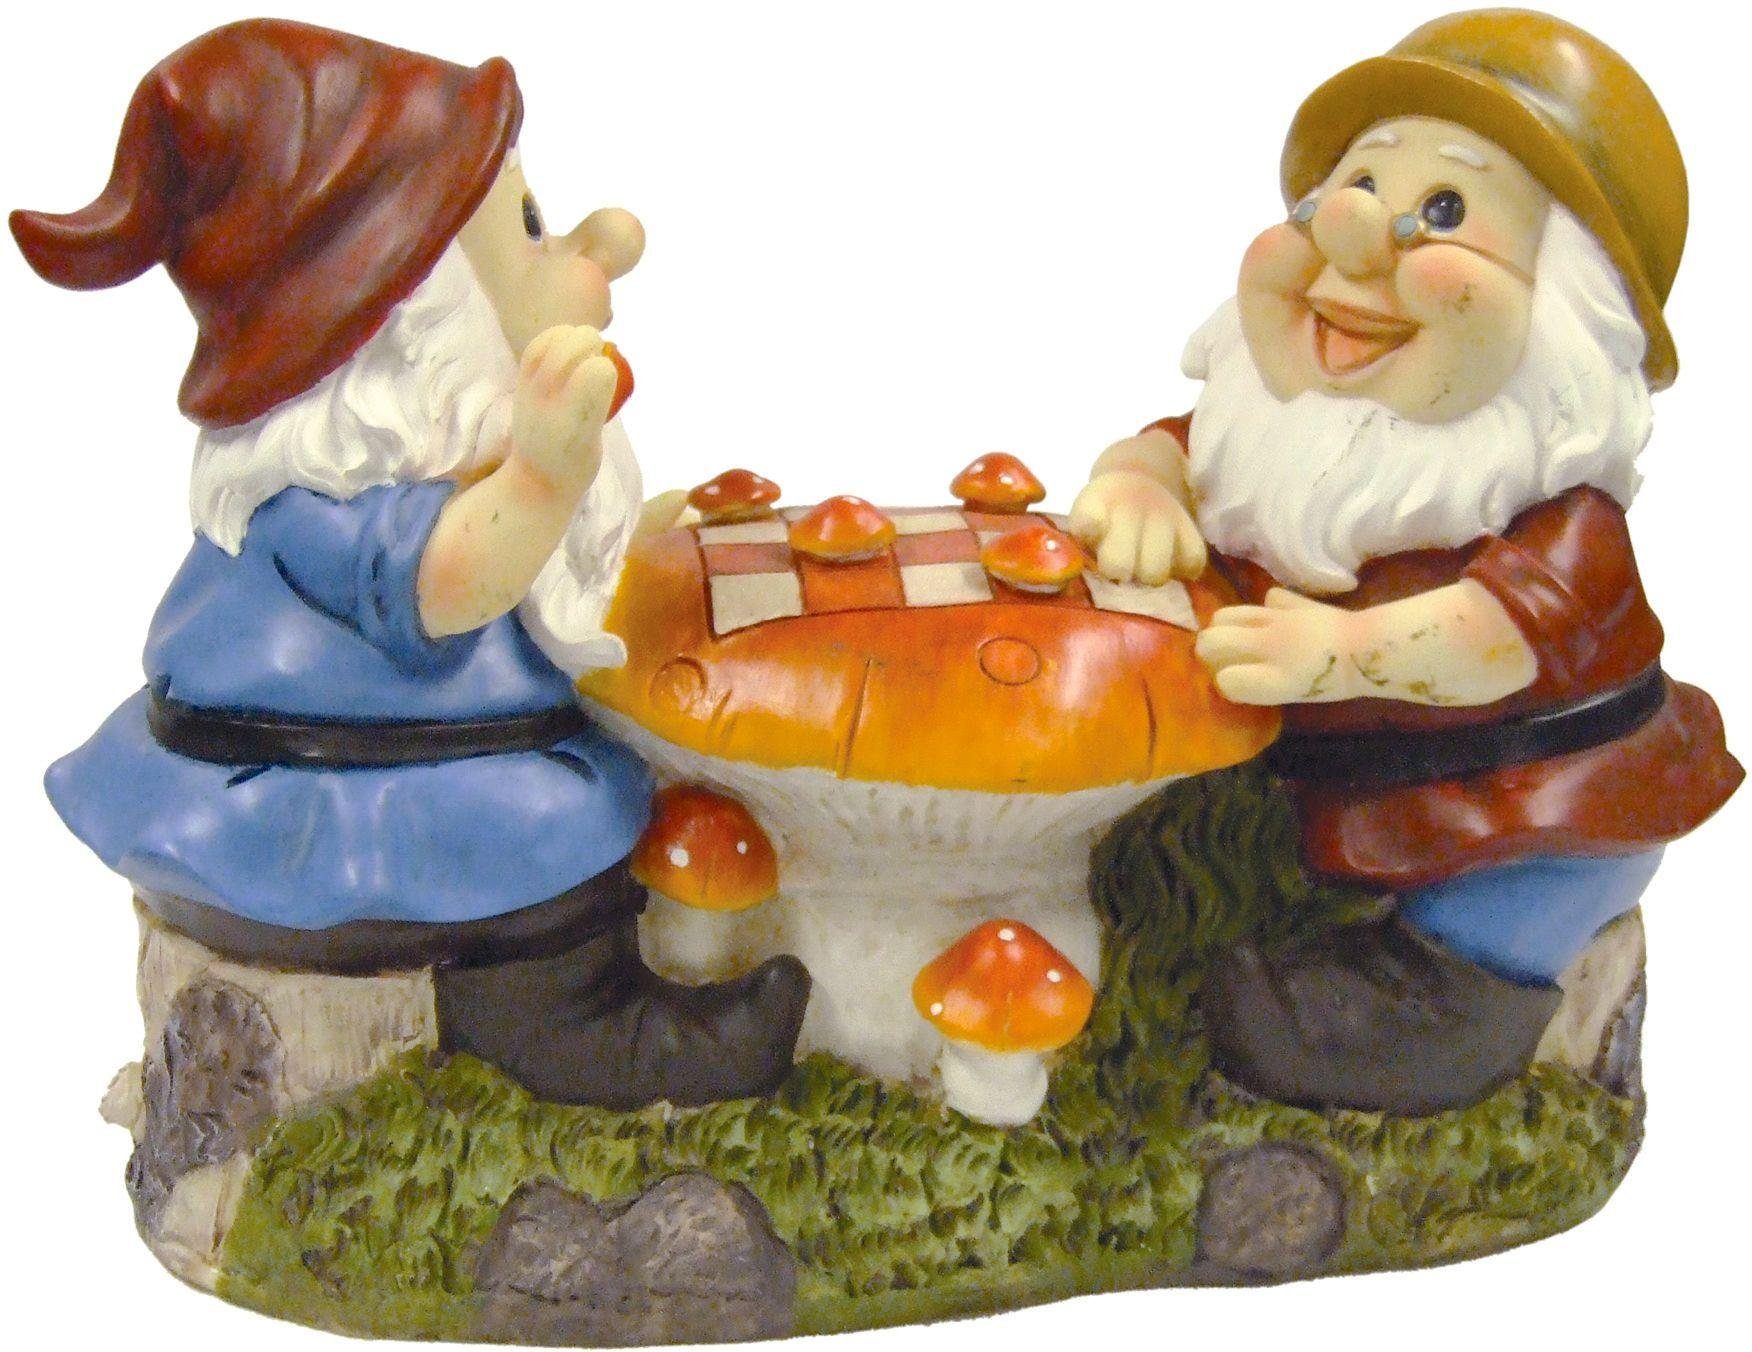 Chess Playing Gnome Garden Ornament. lowest price